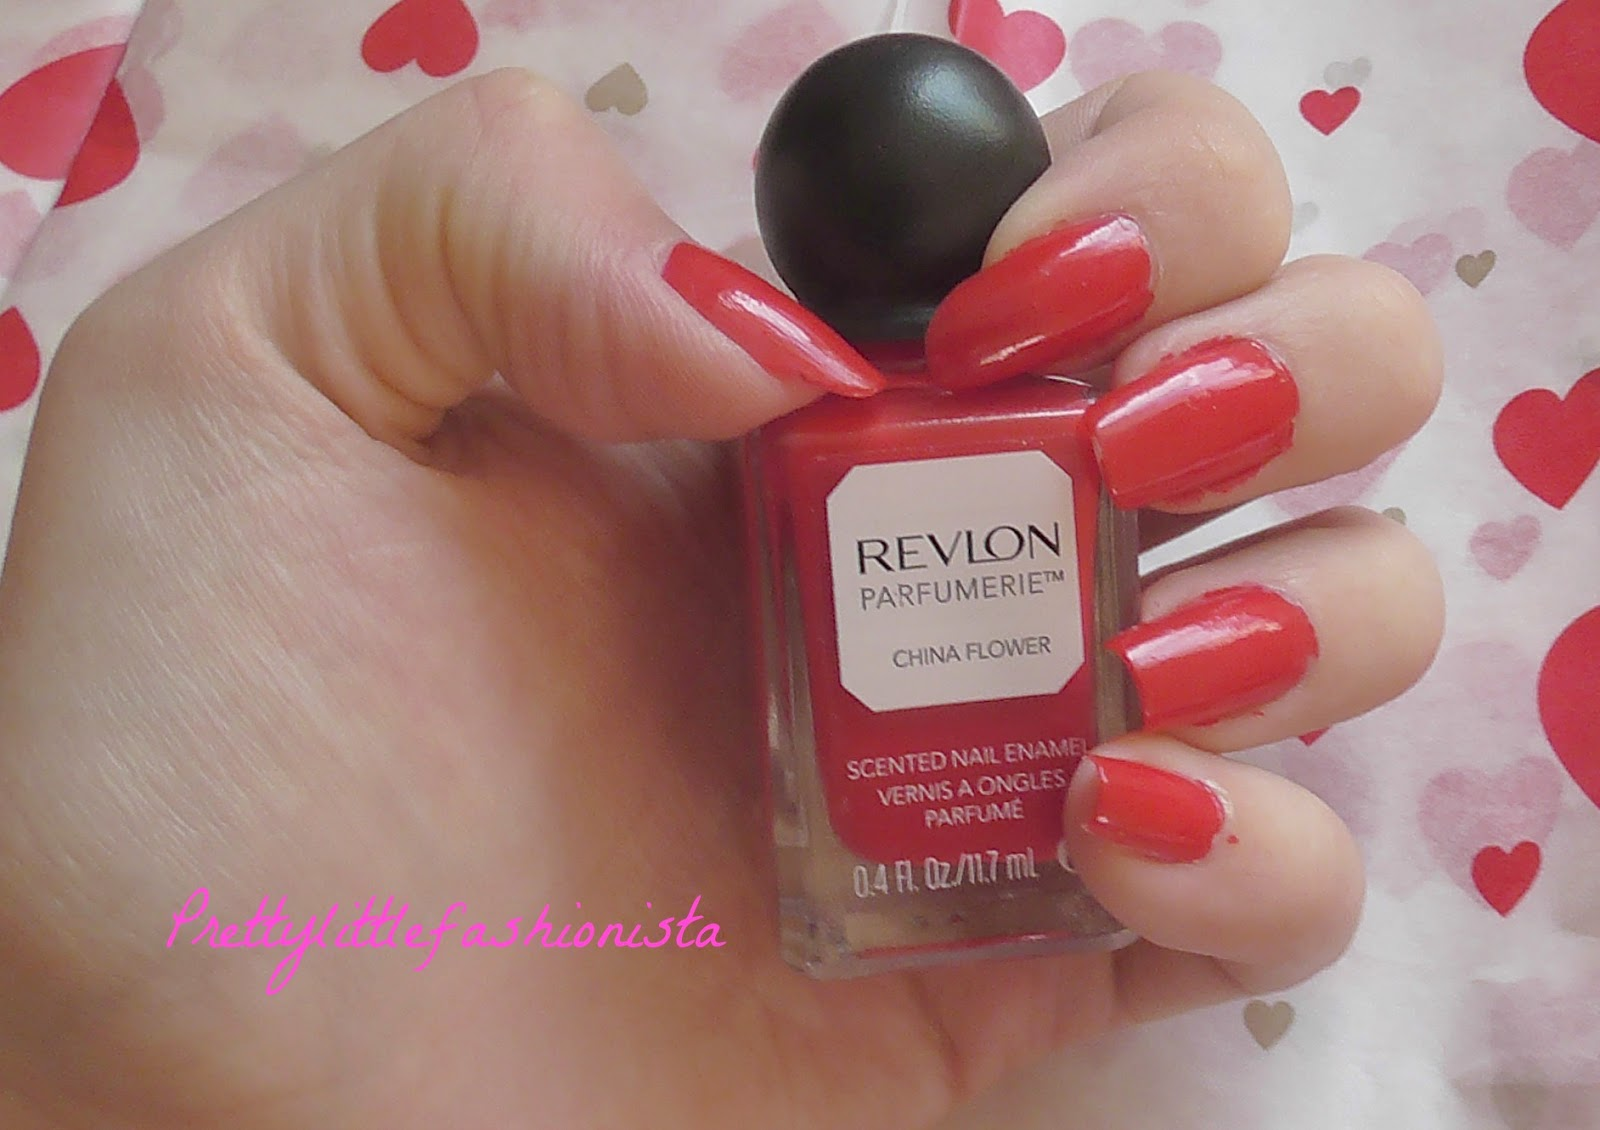 Revlon Scented Nail Polish in China Flower